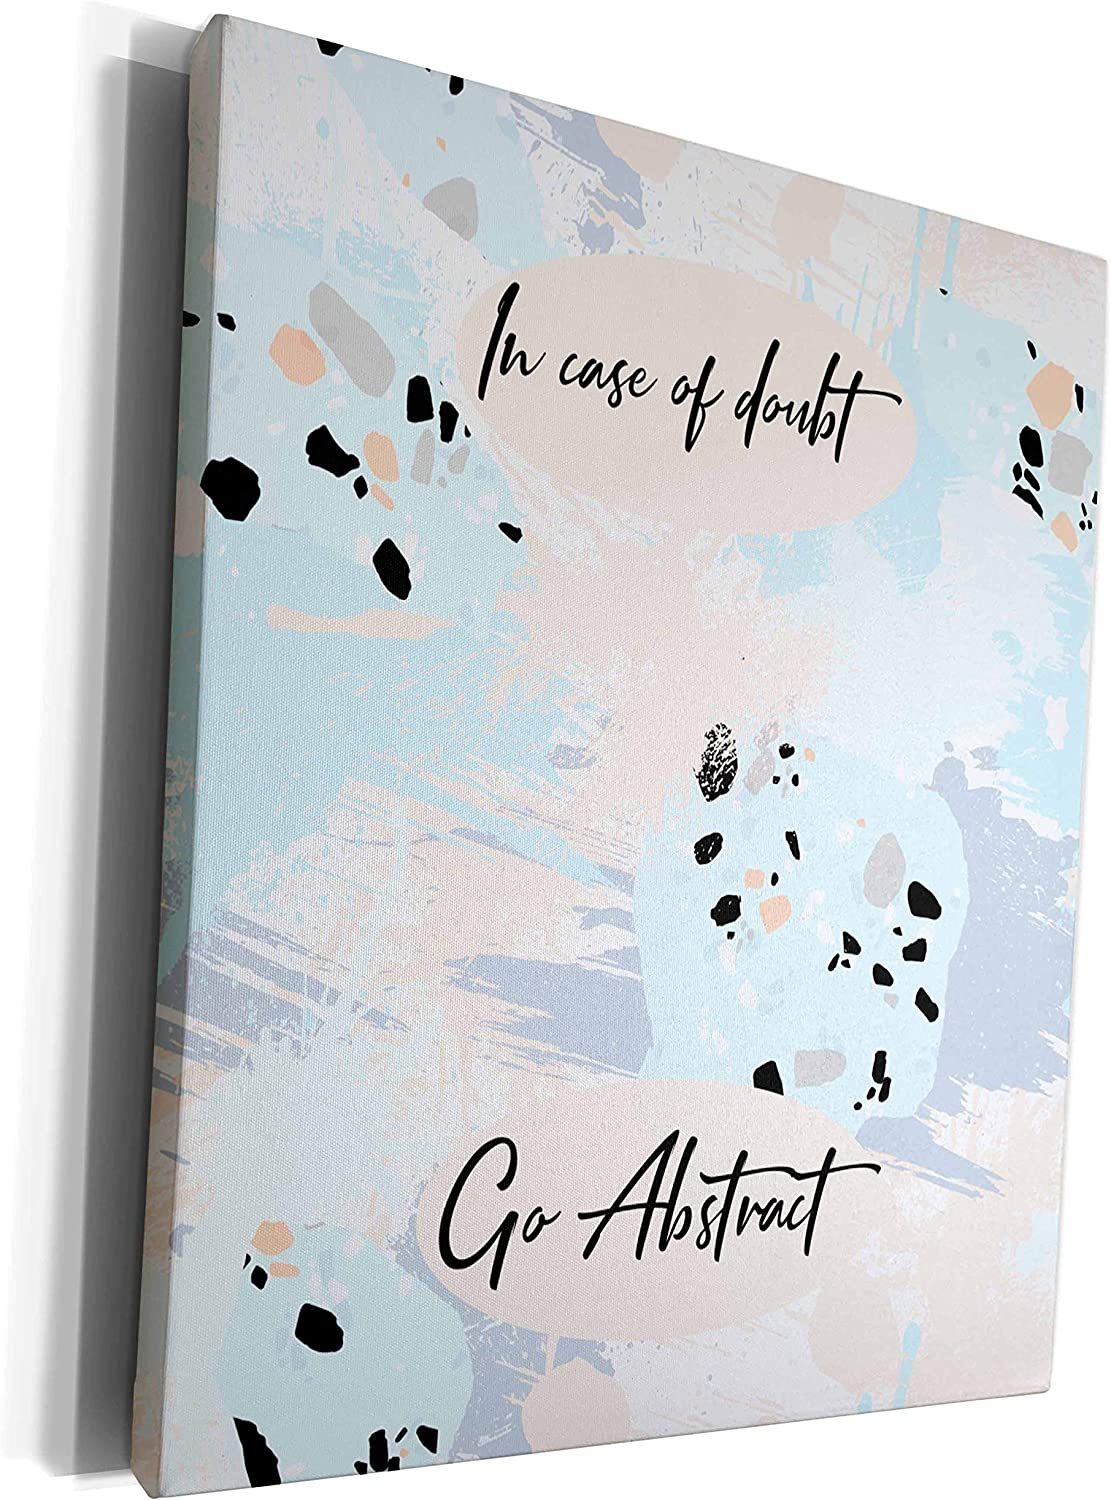 3dRose Super sale period limited Alexis Design - Inspirational In of go doubt abstr 25% OFF case